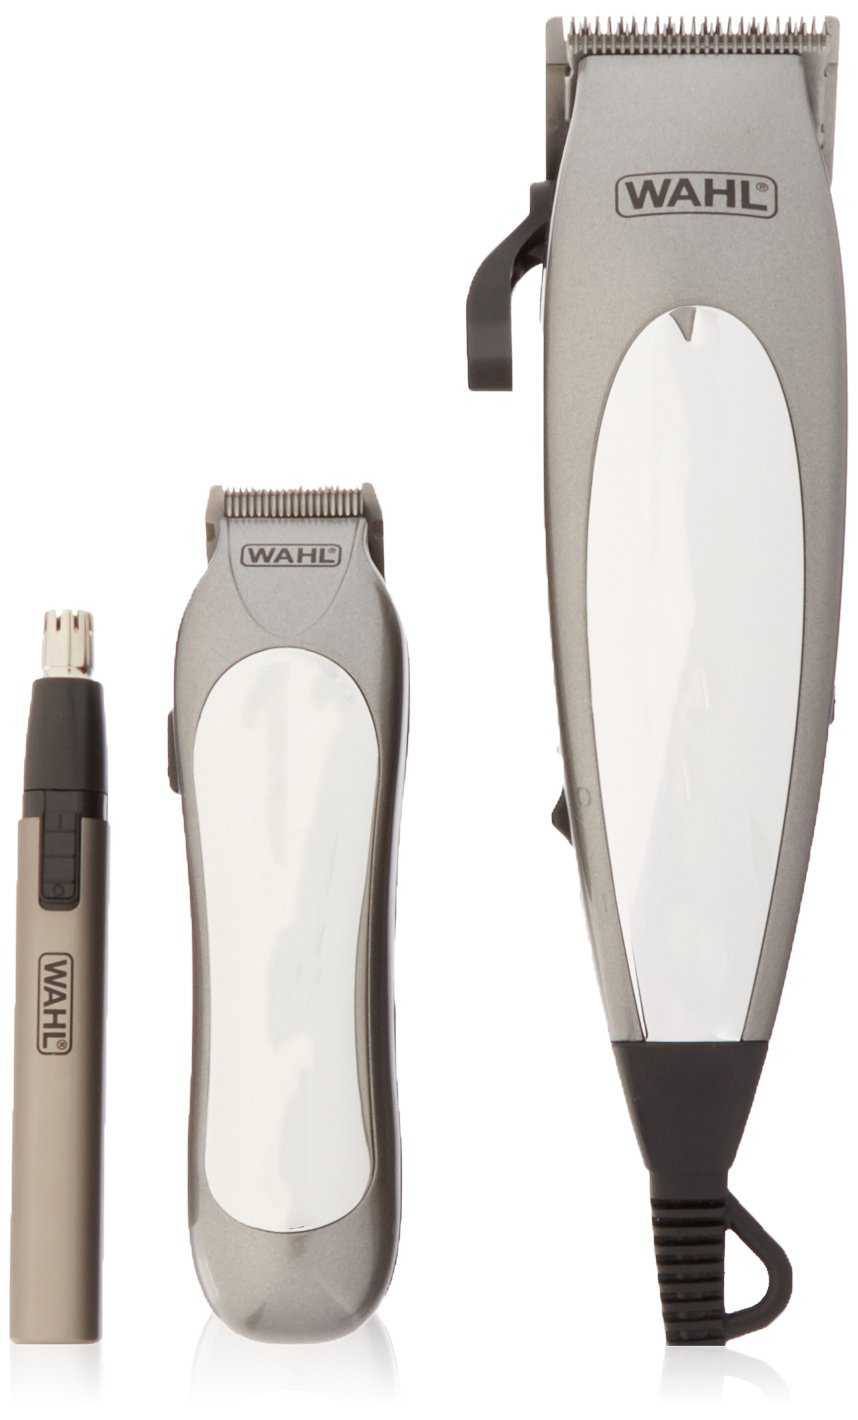 Amazon.com: Wahl 79305-3658 Deluxe Groom Pro 21 Piece Complete Hair Clipper Cutting Kit, 220 Volts: Beauty